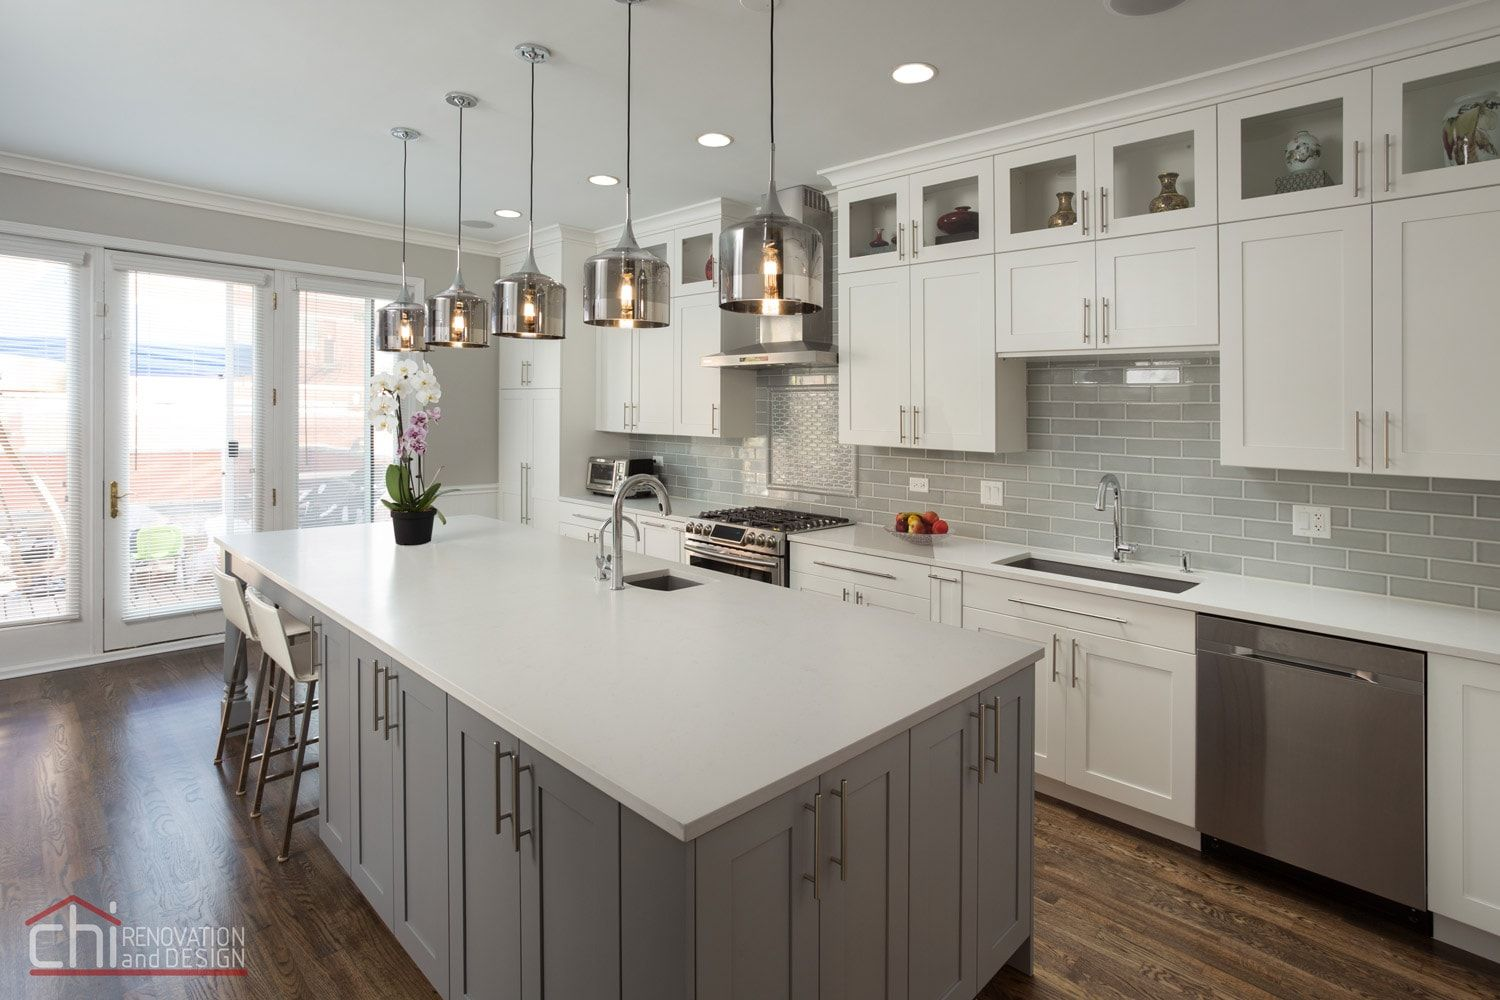 These Kitchen Cabinet Tips By Chi Renovation Design Will Help You Make Gre Contemporary Kitchen Remodel Kitchen Remodel Design Kitchen Renovation Inspiration